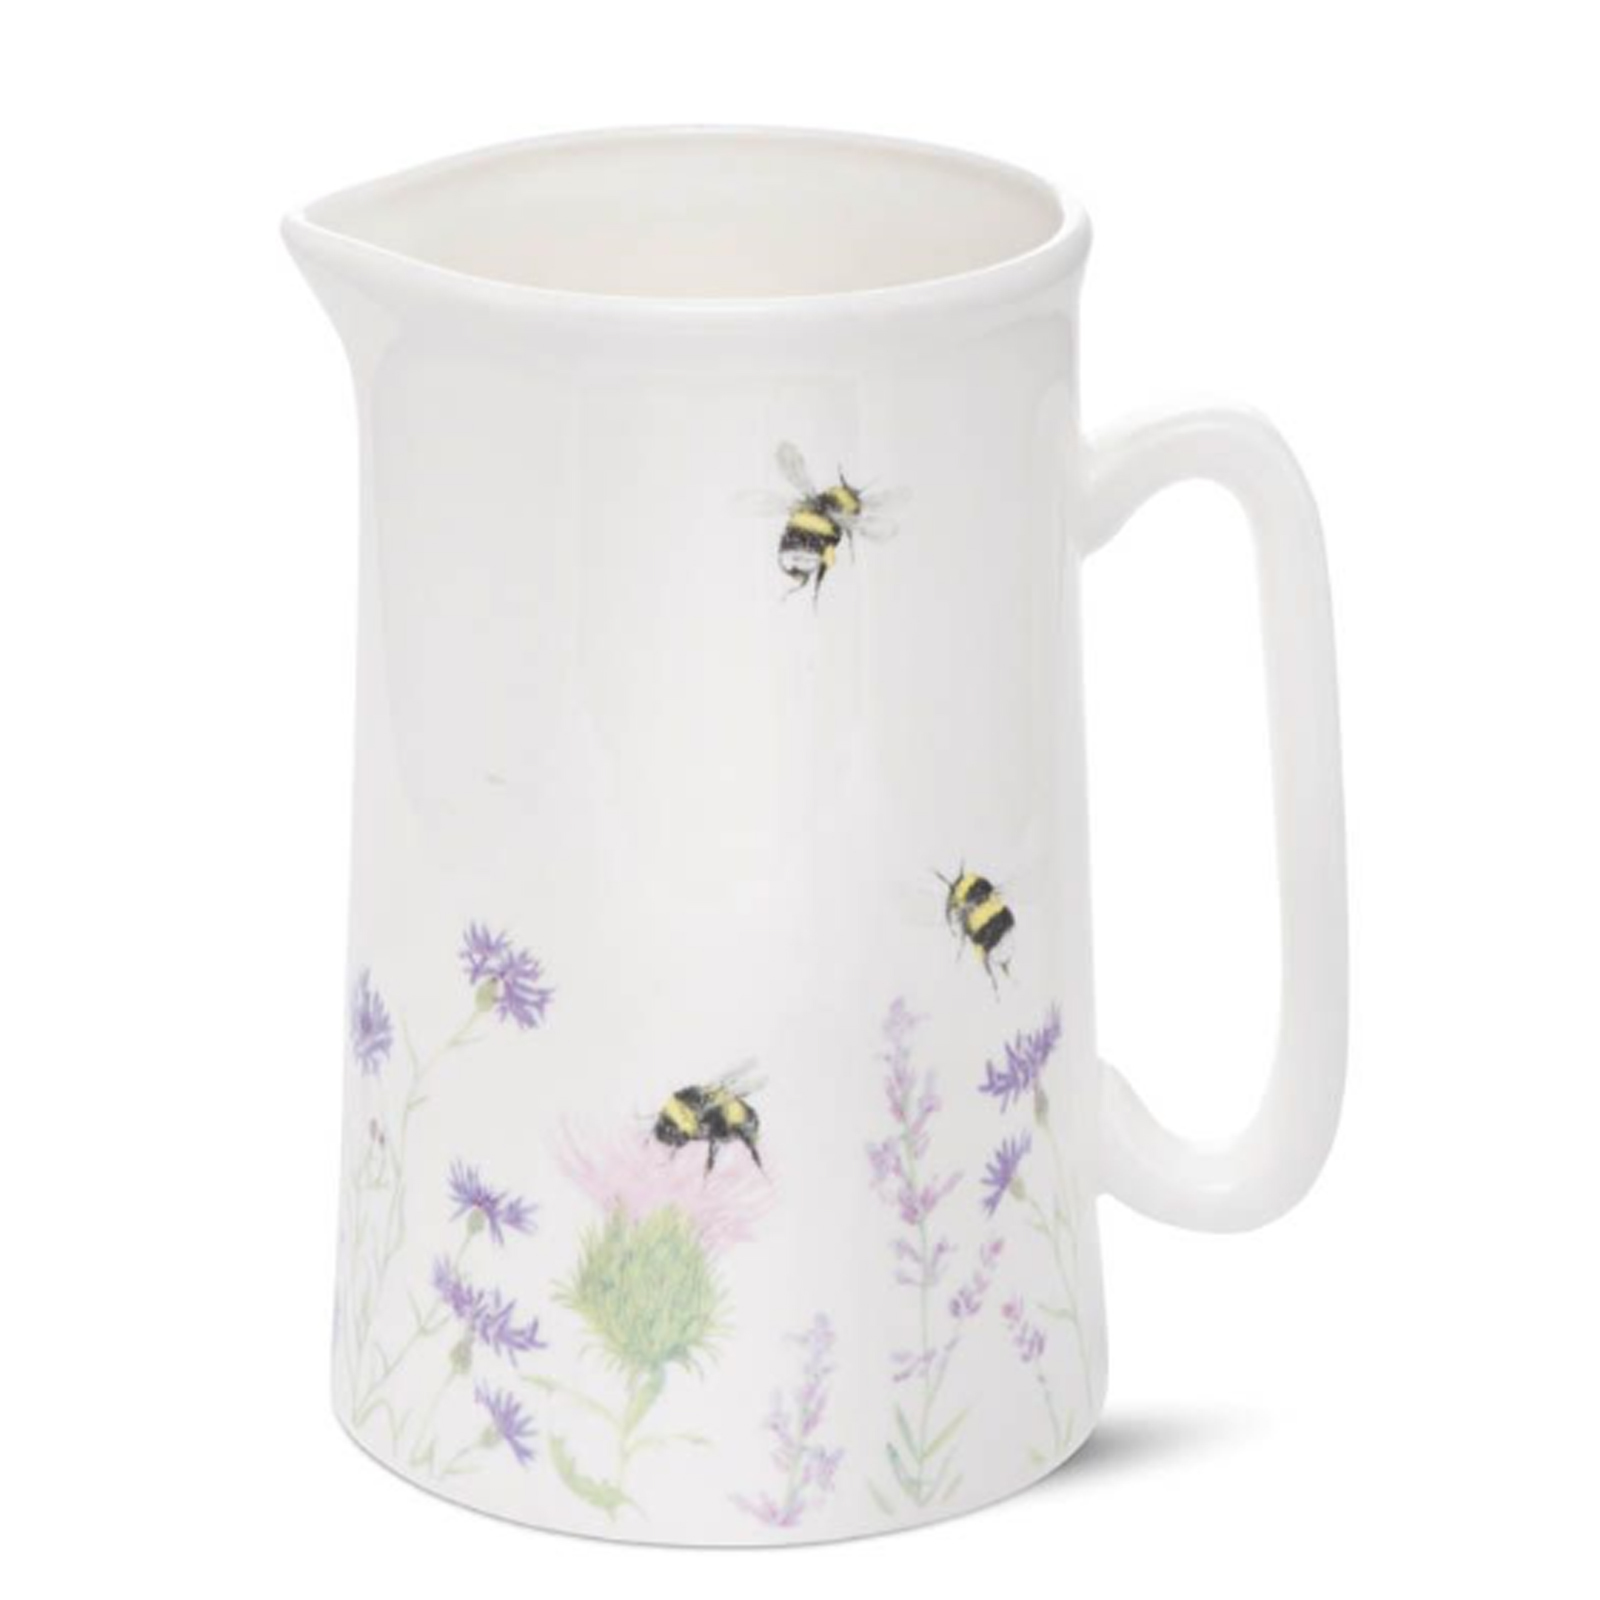 Bumble Bee and Flower Bone China Jug - Small by Mosney Mill